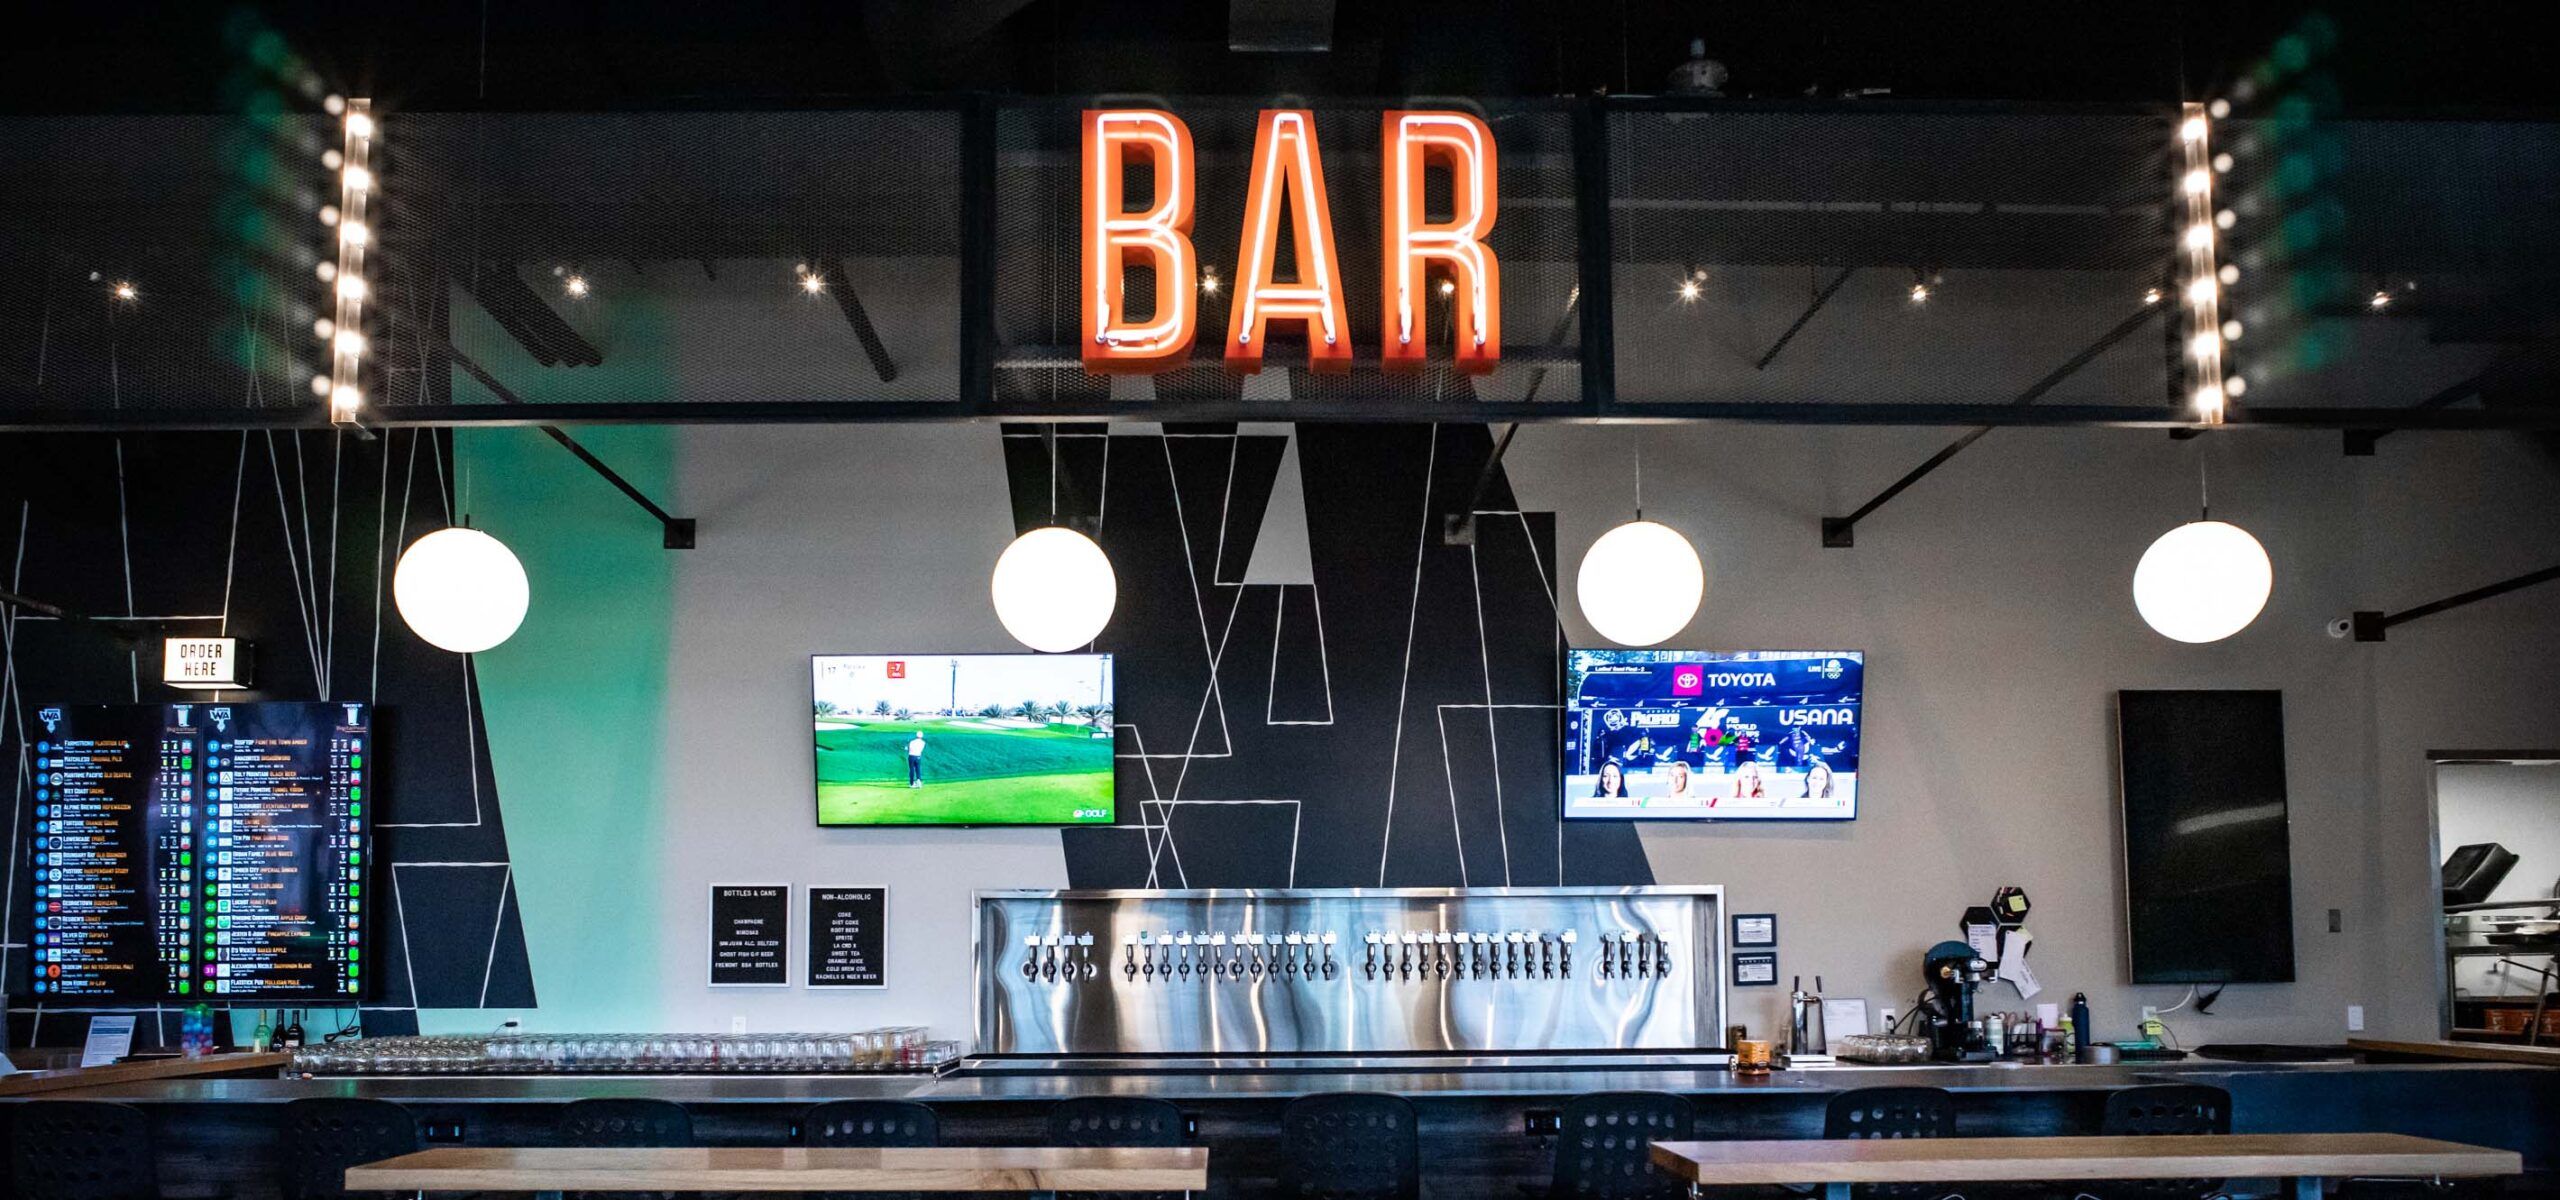 Bar counter with neon sign and TV screens above the bar.